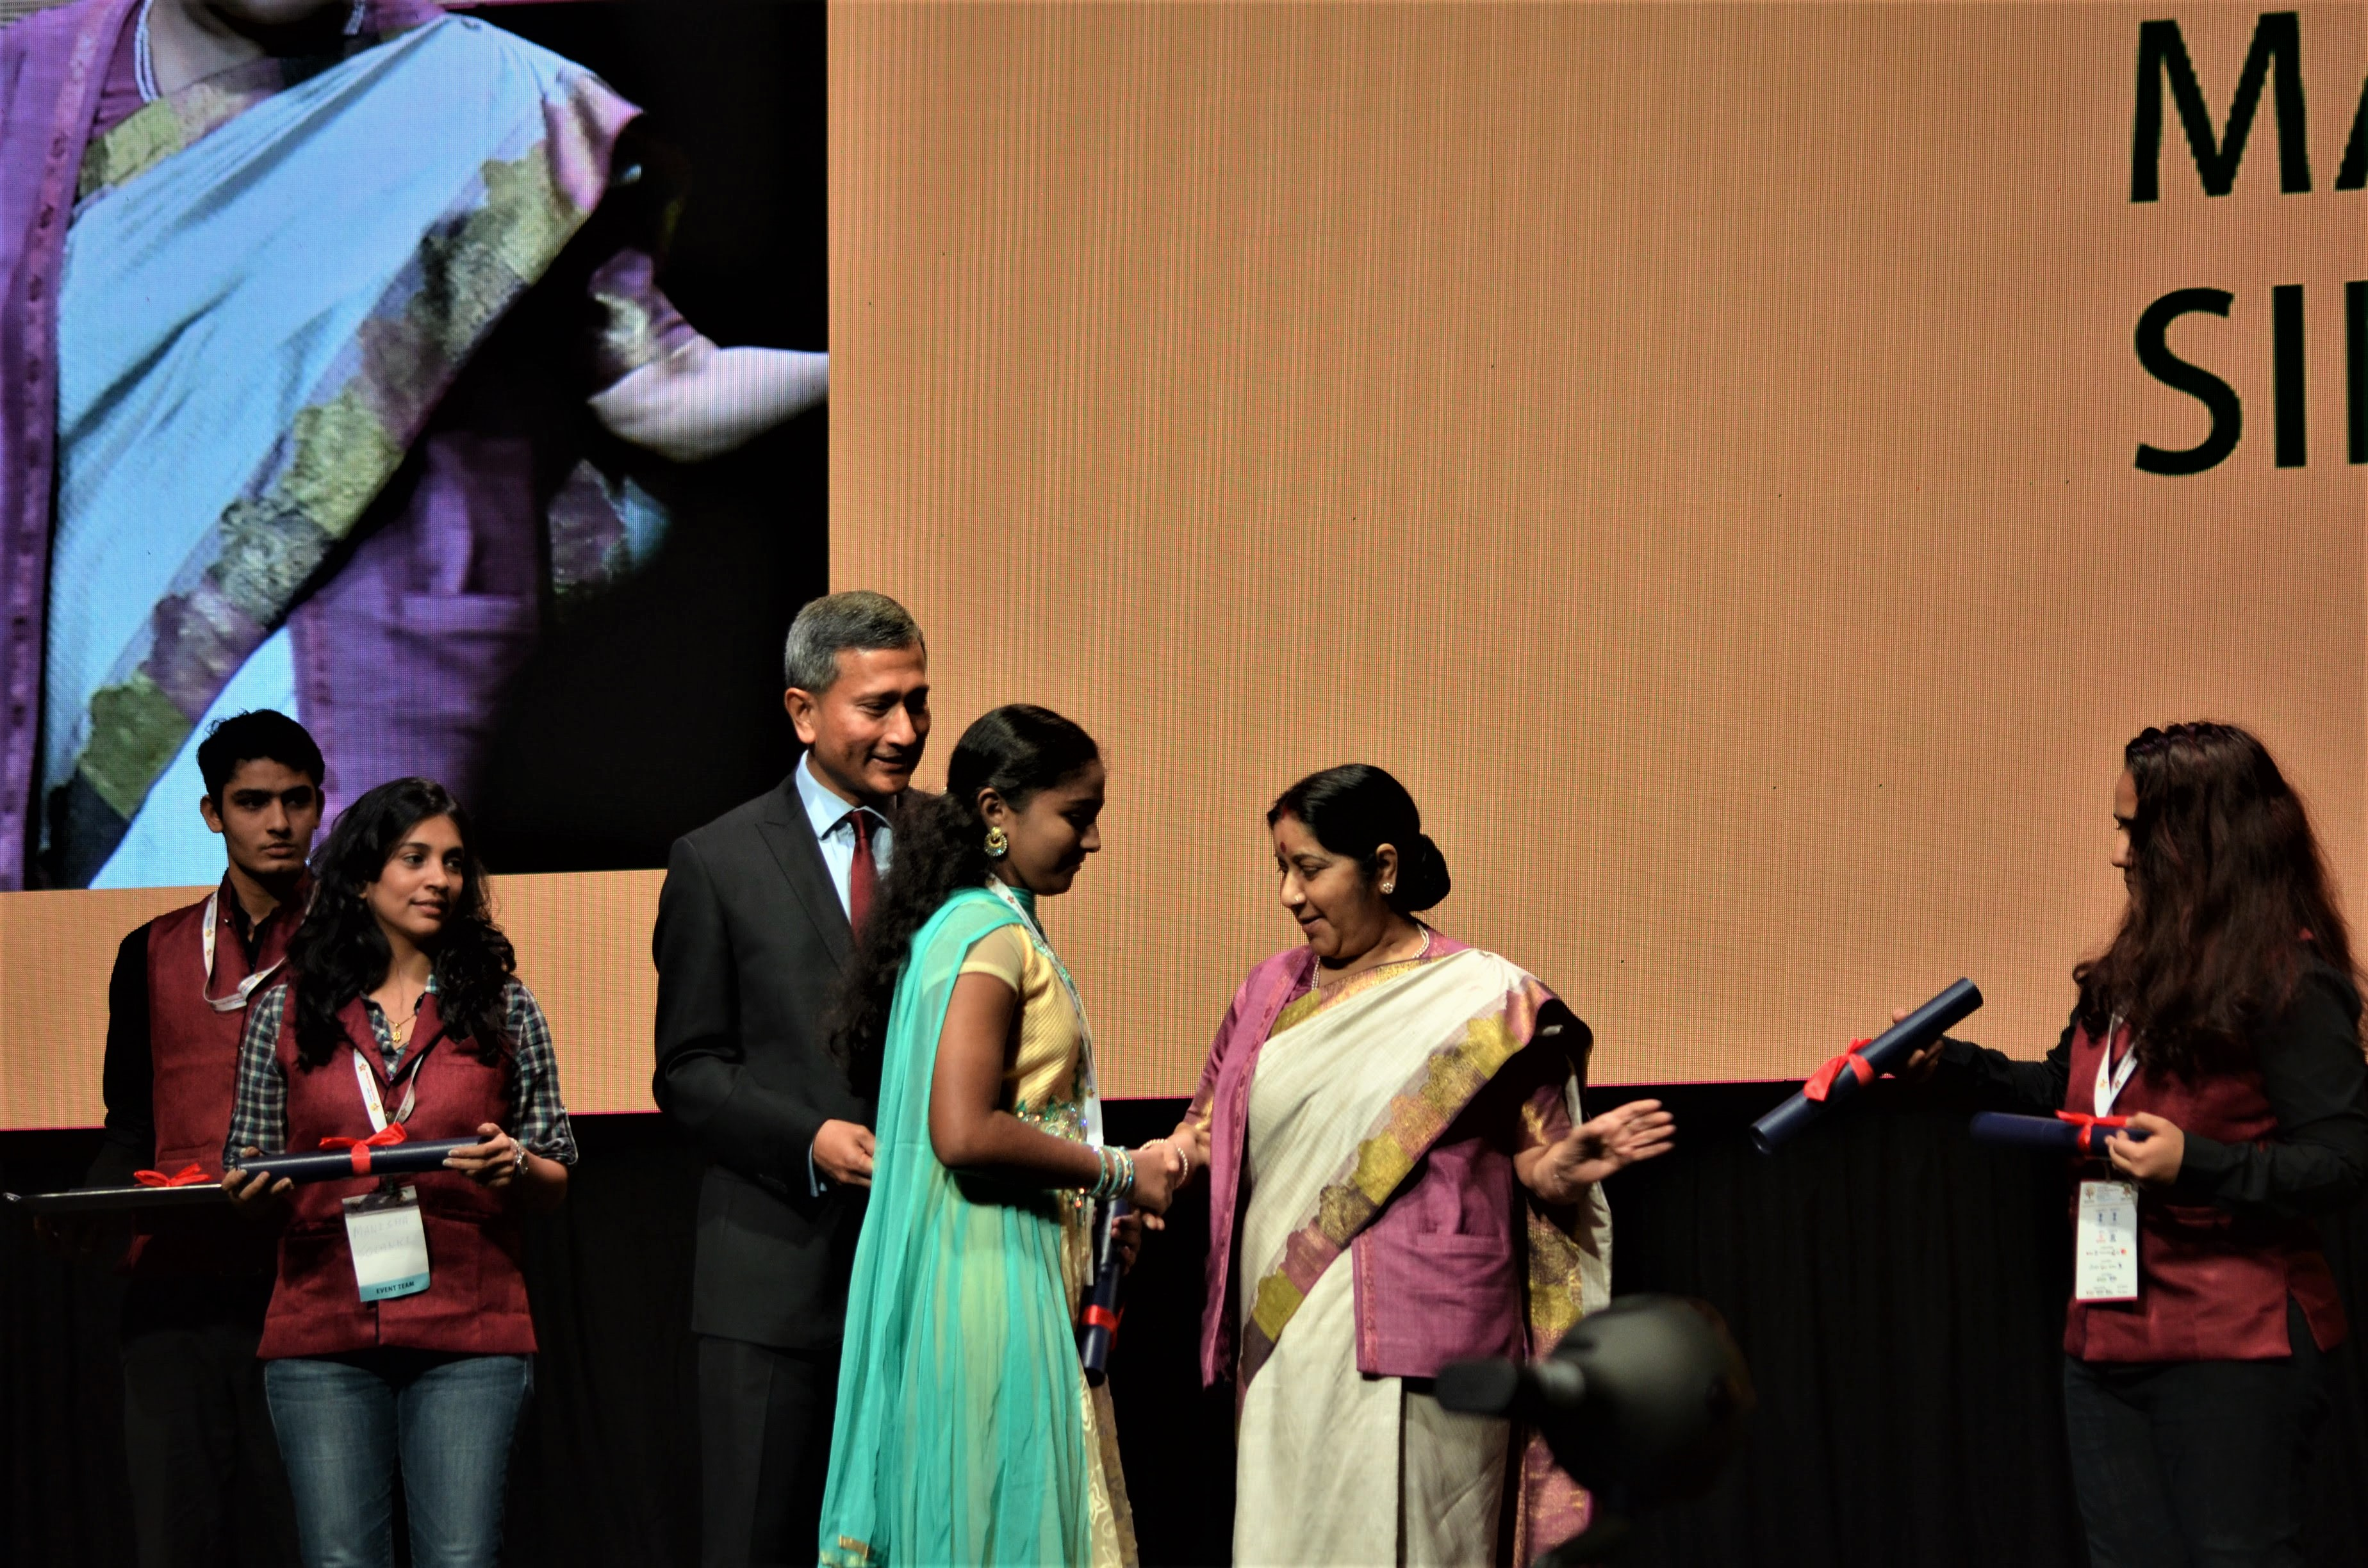 Minister for Foreign Affairs of Singapore Dr Vivian Balakrishnan and Indian Minister of External Affairs Sushma Swaraj while distributing awards to winners of the different contests of PBD.